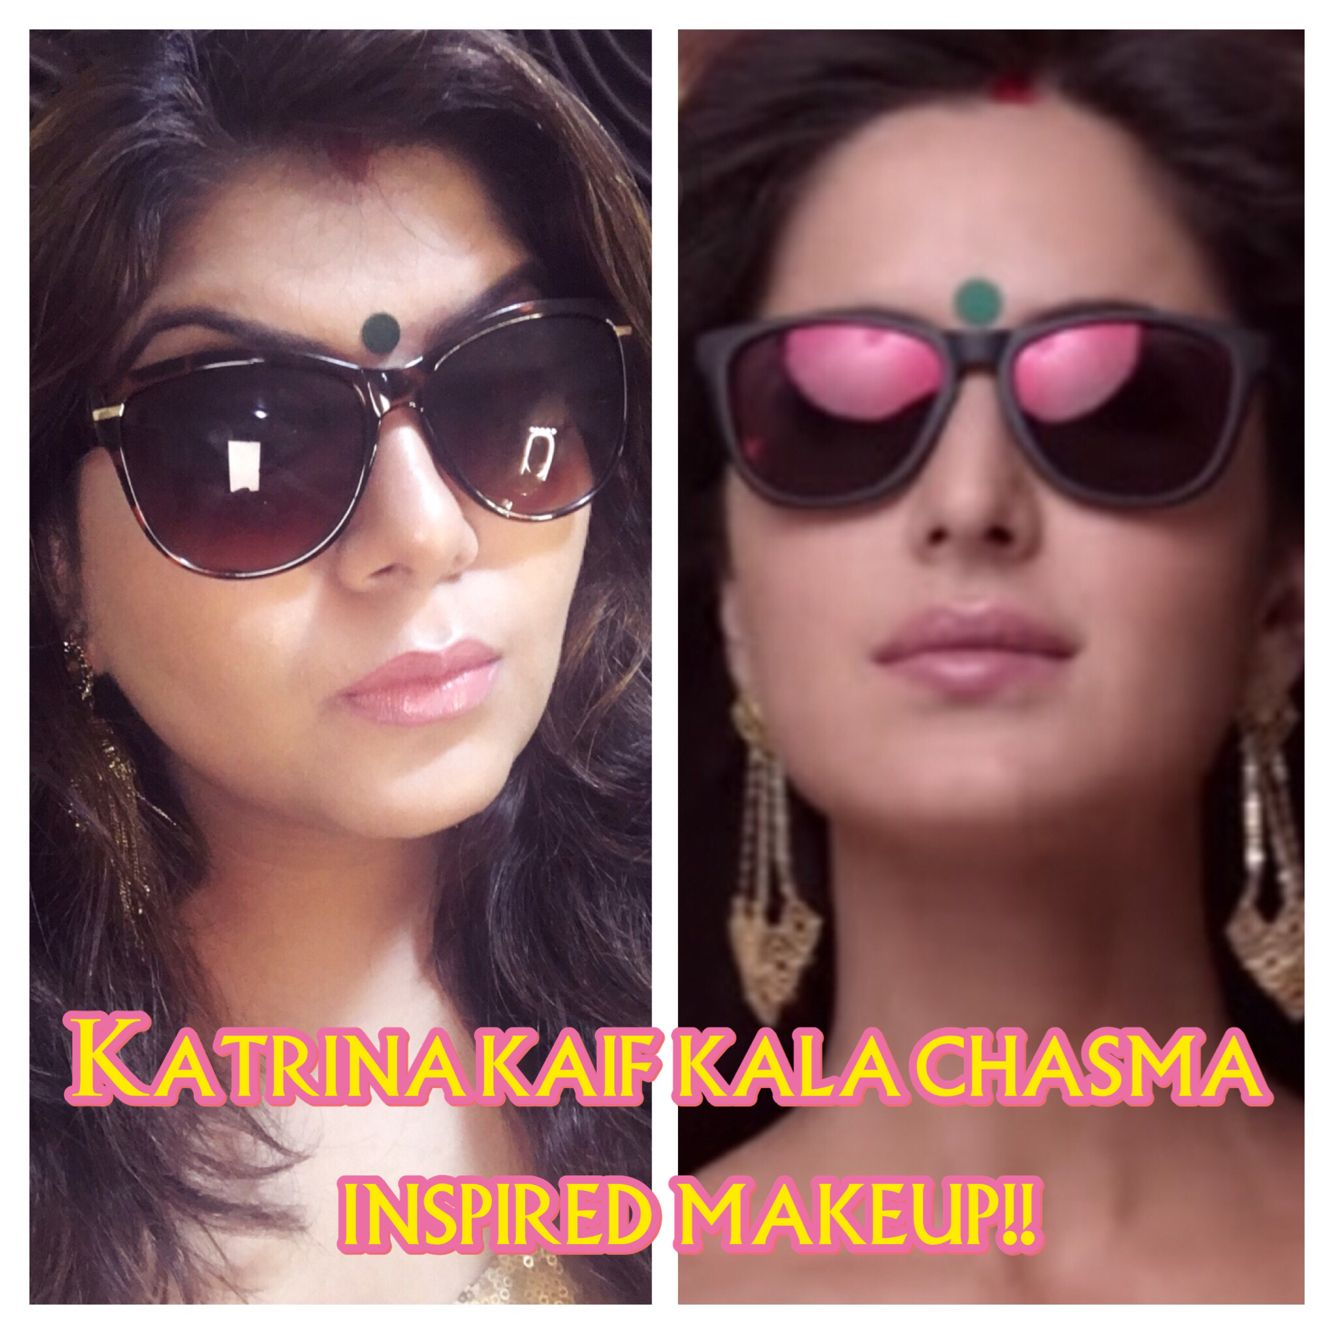 Katrina kaif inspired makeup kala chasma do subscribe comment katrina kaif inspired makeup kala chasma do subscribe comment and like the video baditri Image collections